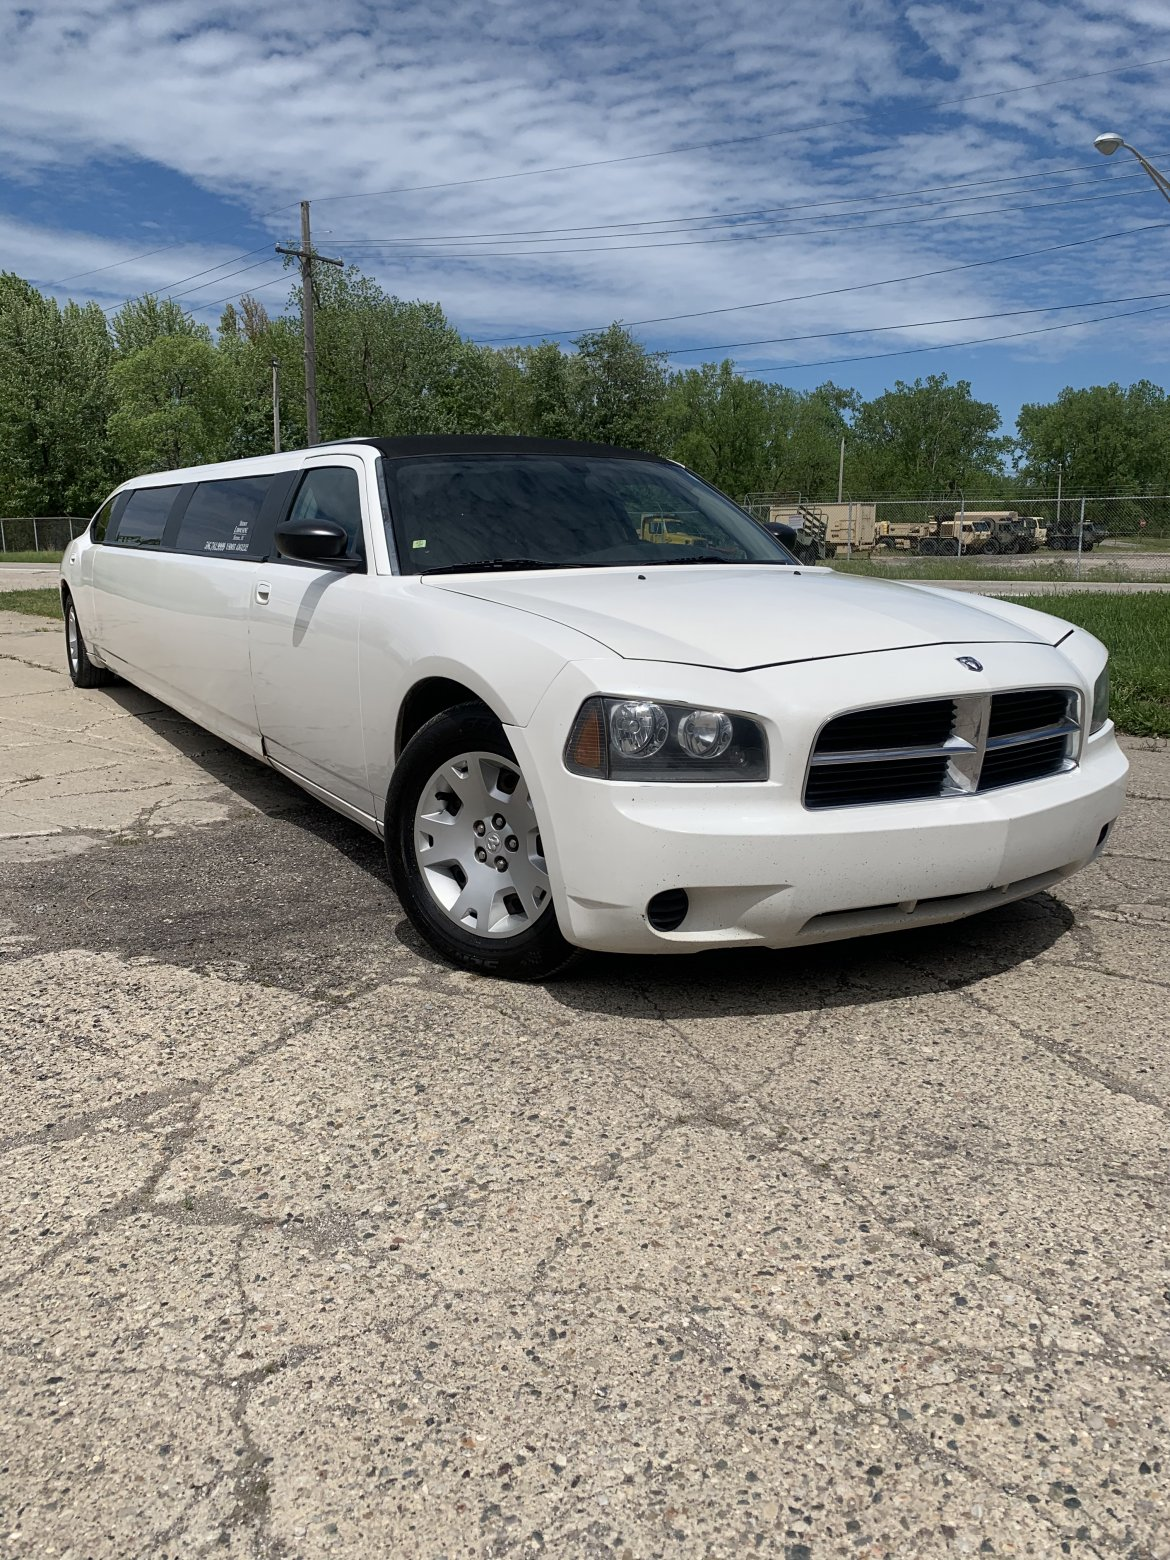 Limousine for sale: 2006 Dodge Charger 140""